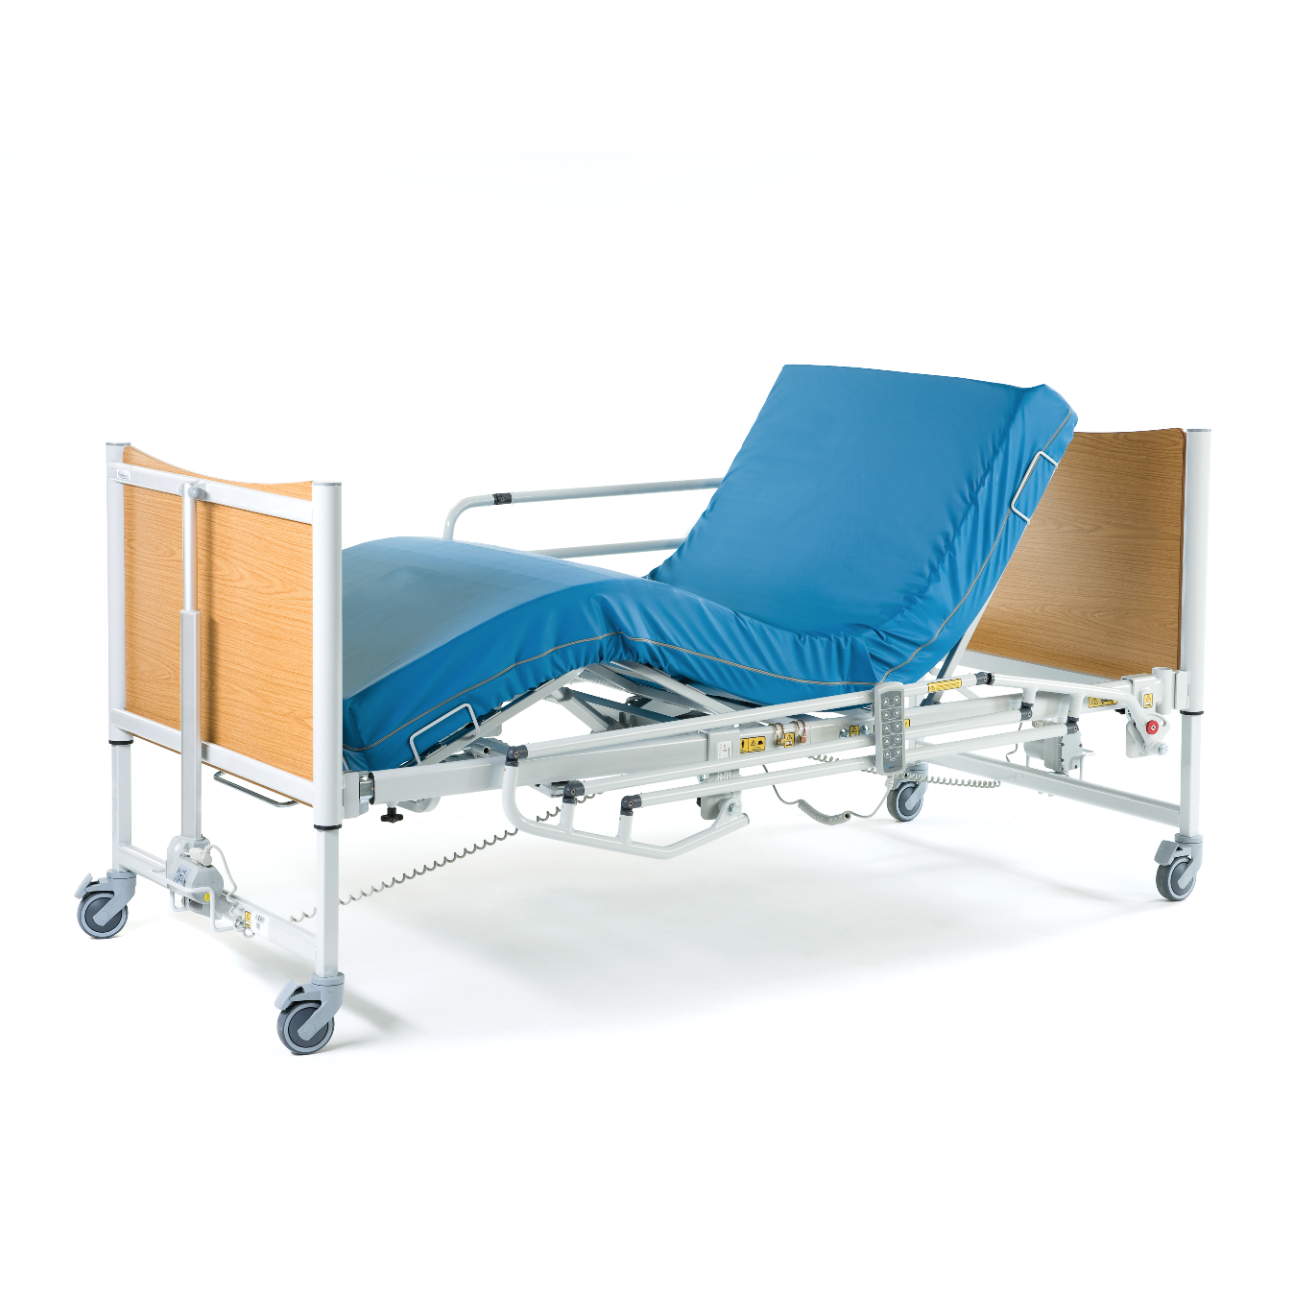 at hospital stock labour delivery medical modern photo room bed in